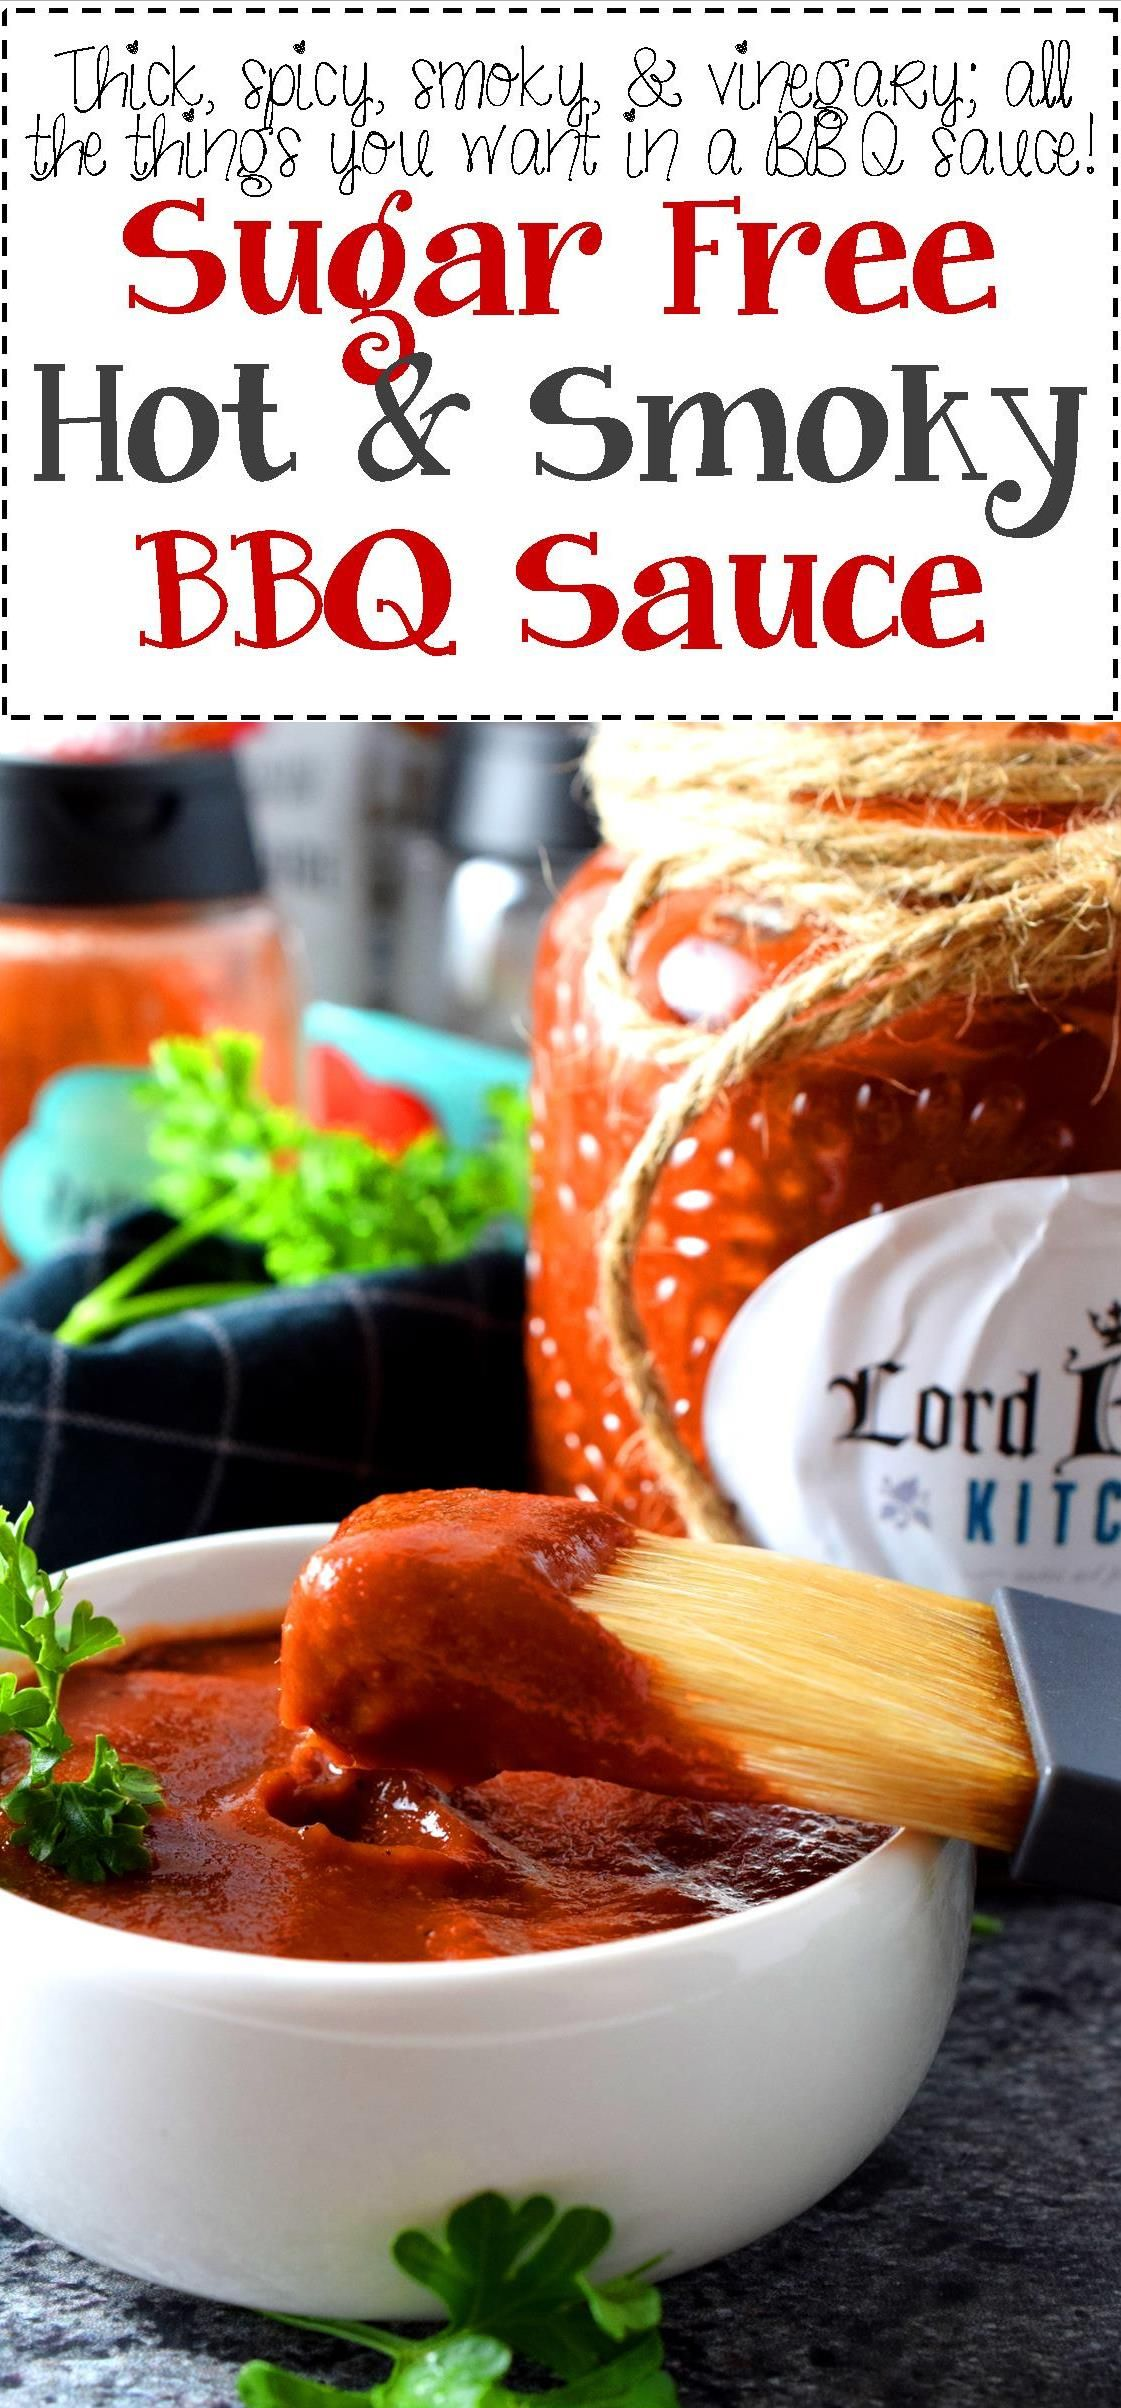 Sugar Free Hot and Smoky Barbeque Sauce - A good barbeque sauce needs to be smoky, it needs to be hot and spicy, it needs to be thick, and have a deep, ...